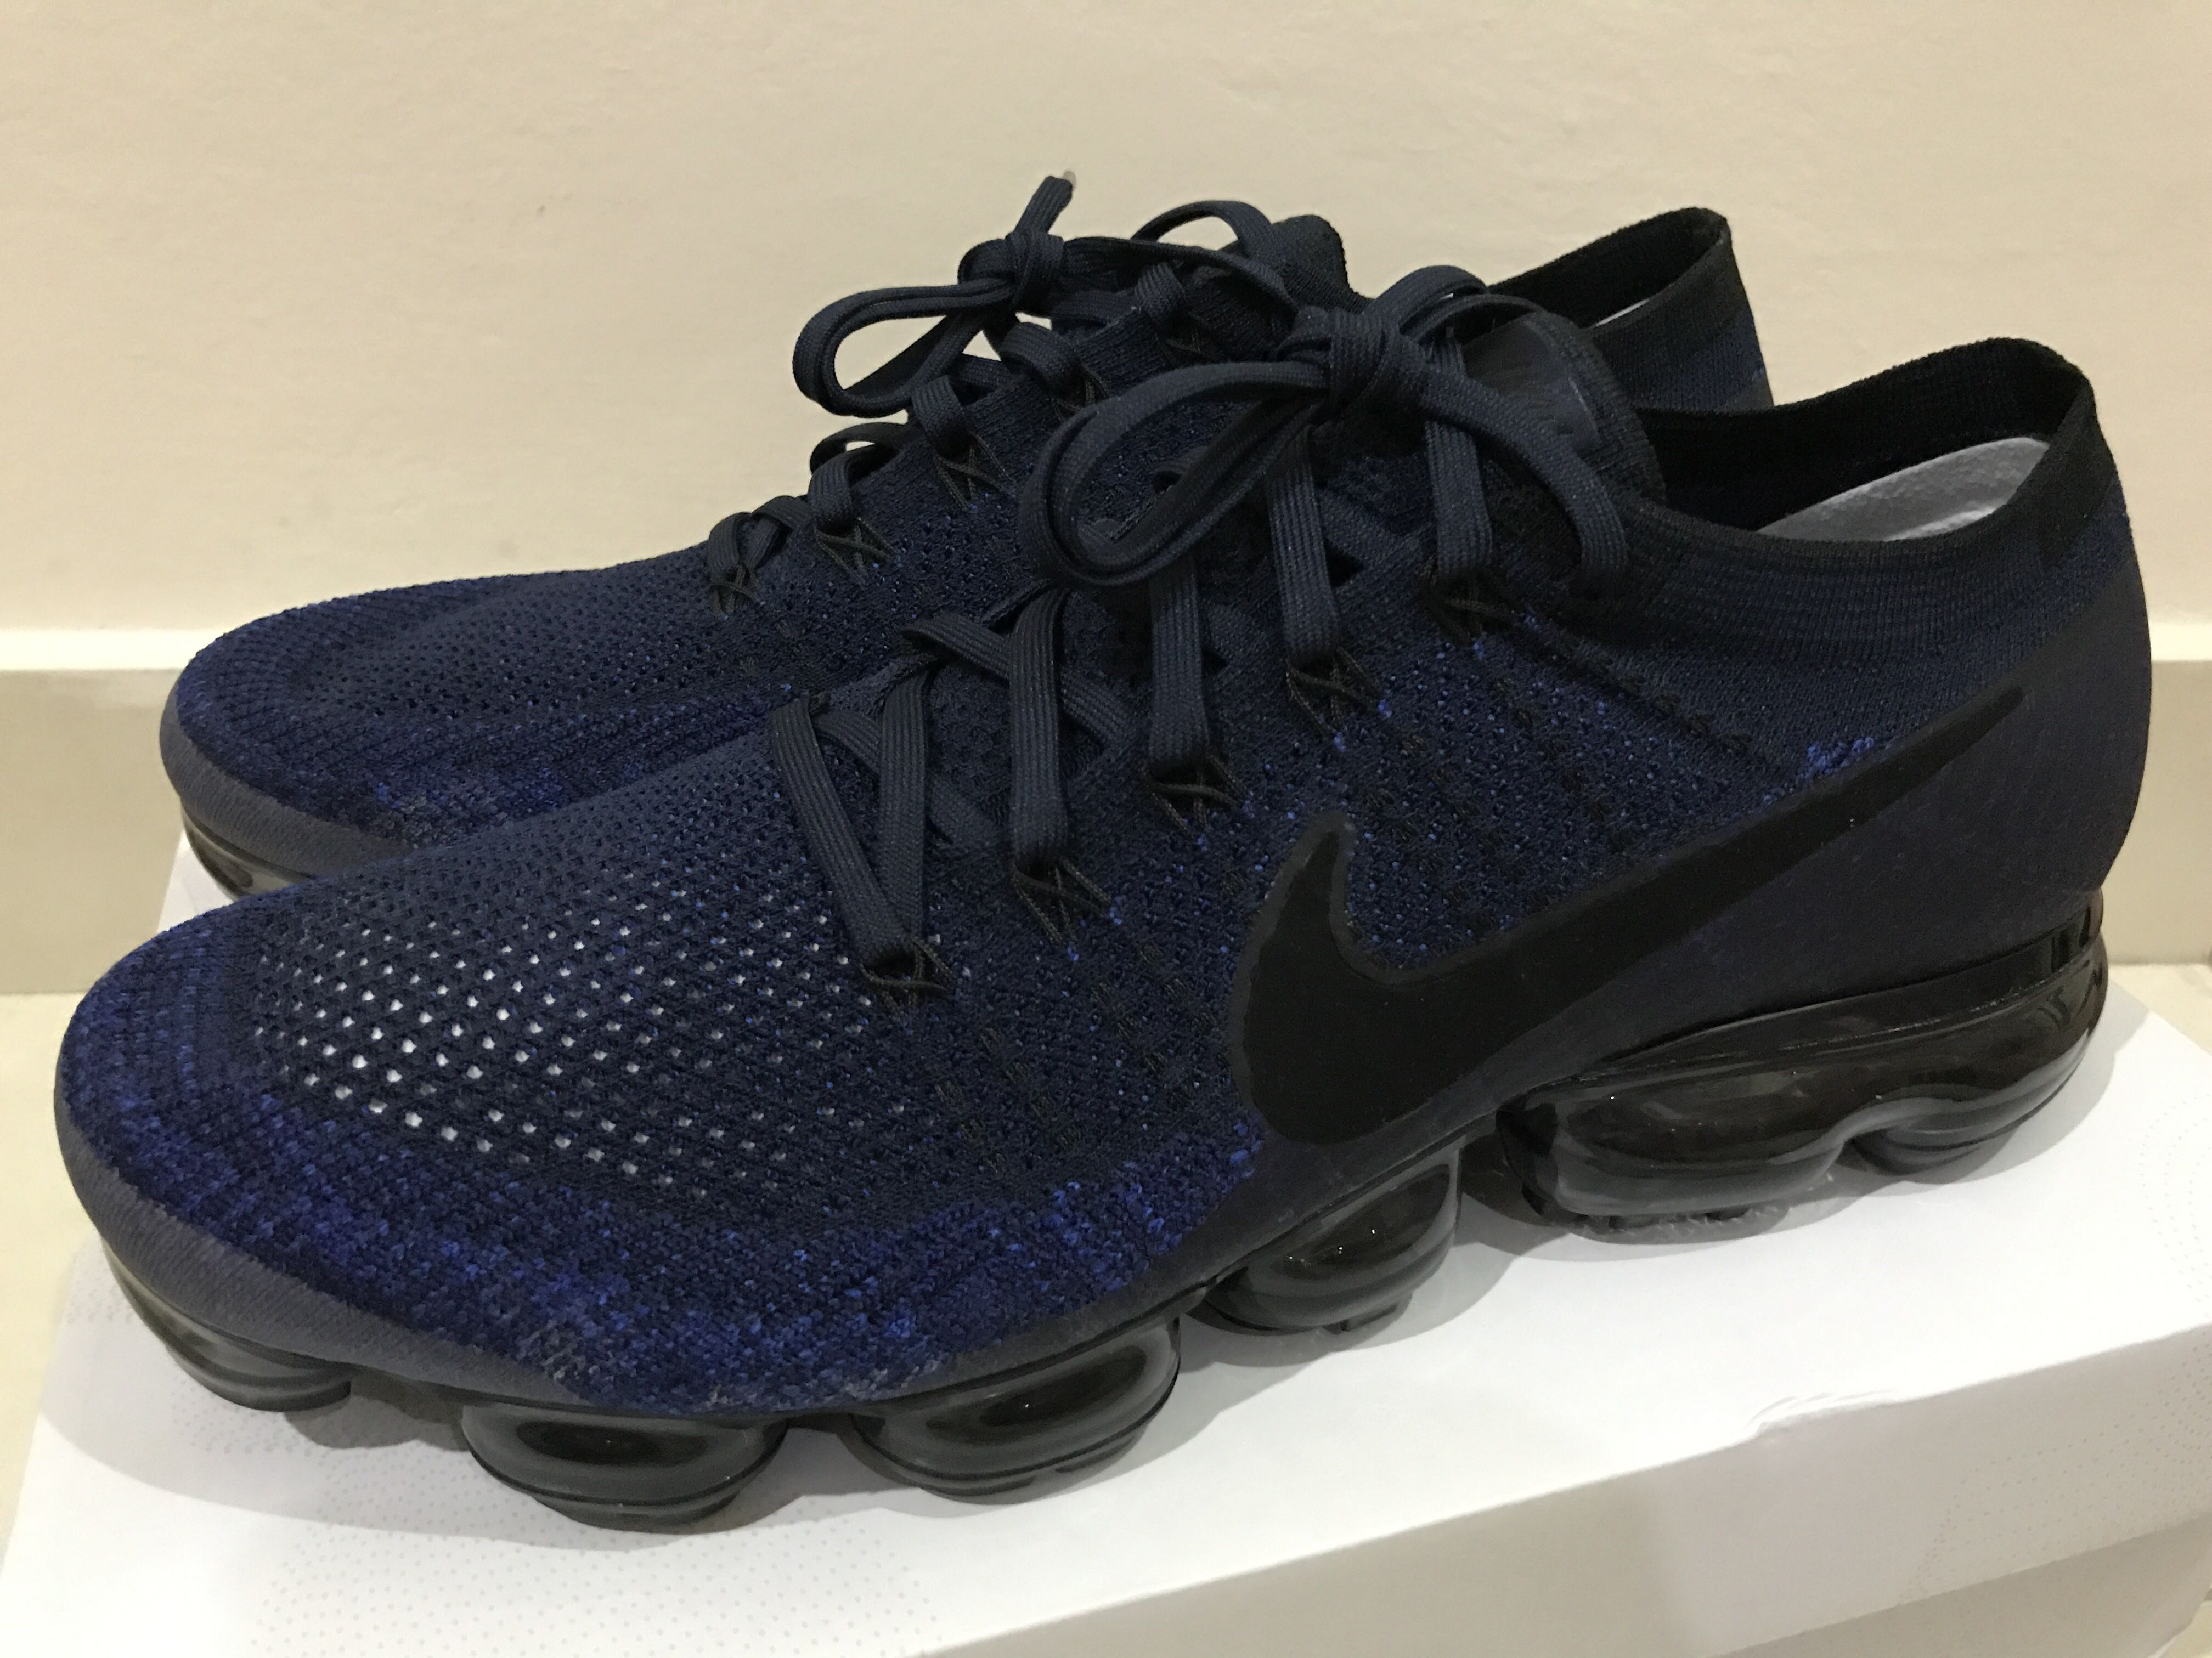 978489269389e Nike Air Vapormax midnight navy, Men's Fashion, Footwear, Sneakers on  Carousell